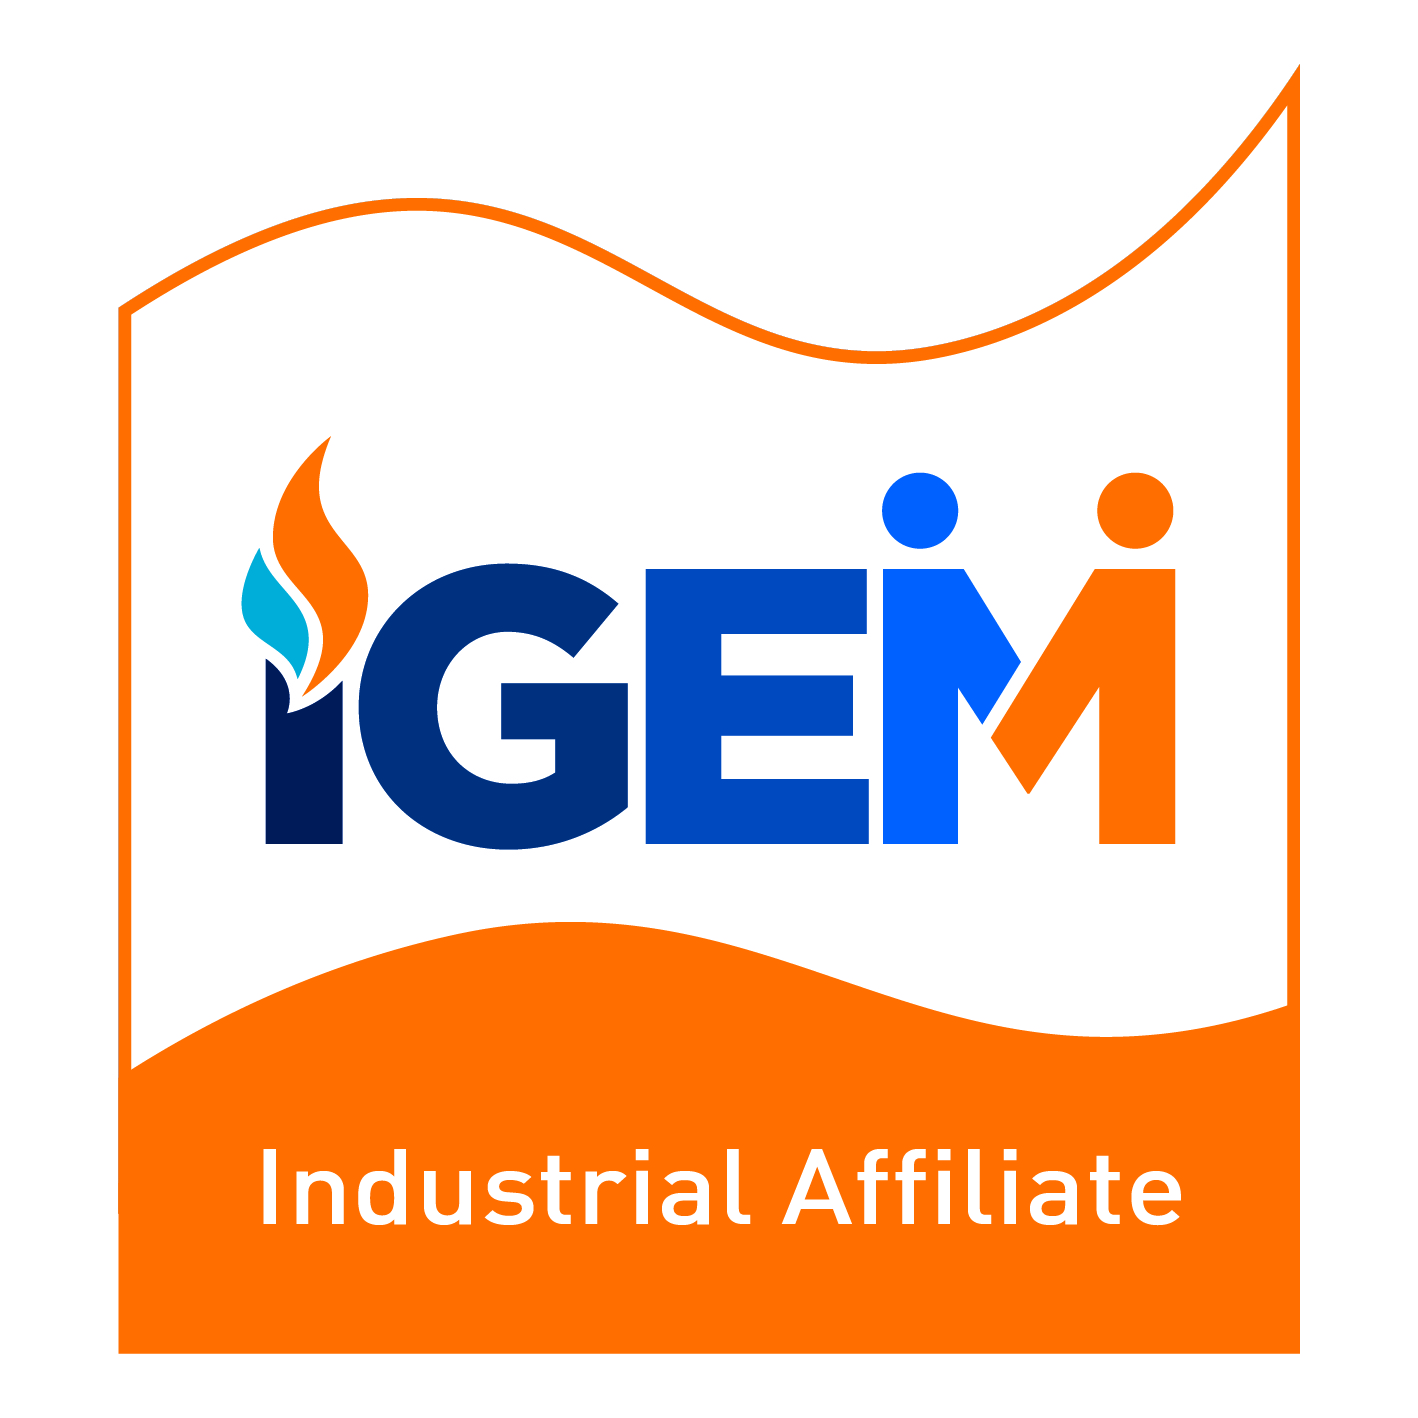 IGEM_Industrial Affiliate_Logo